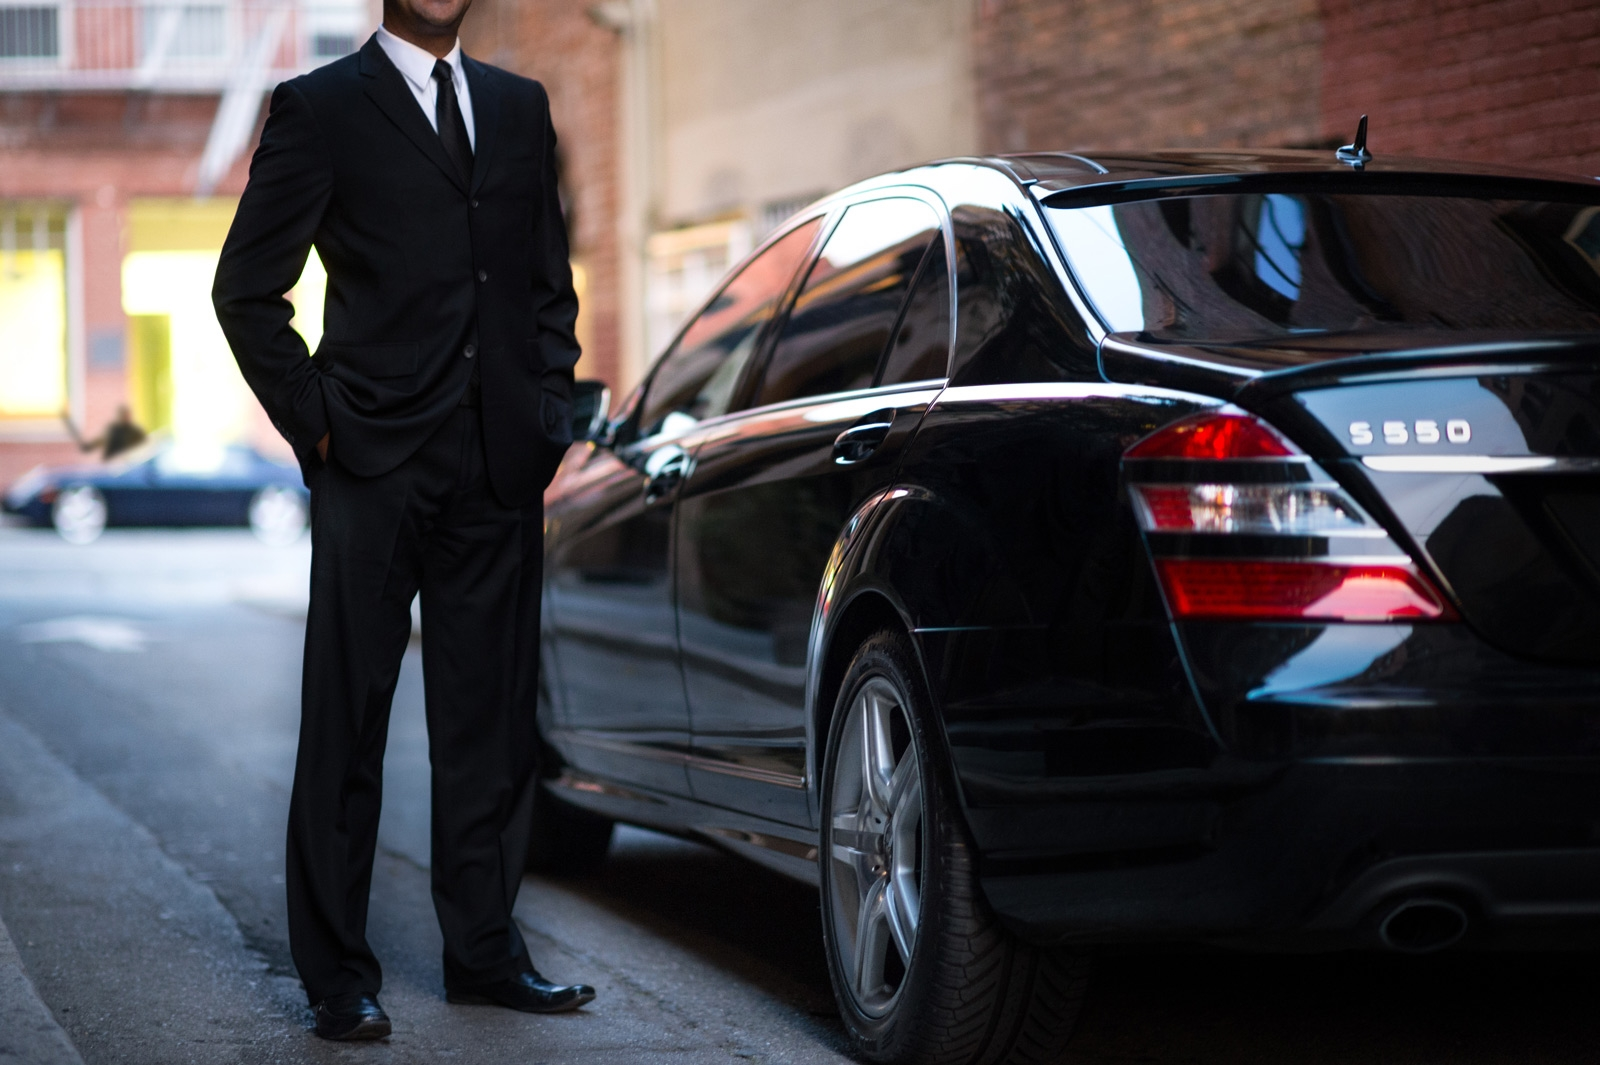 Uber formally appeals the loss of its London licence | DeviceDaily.com